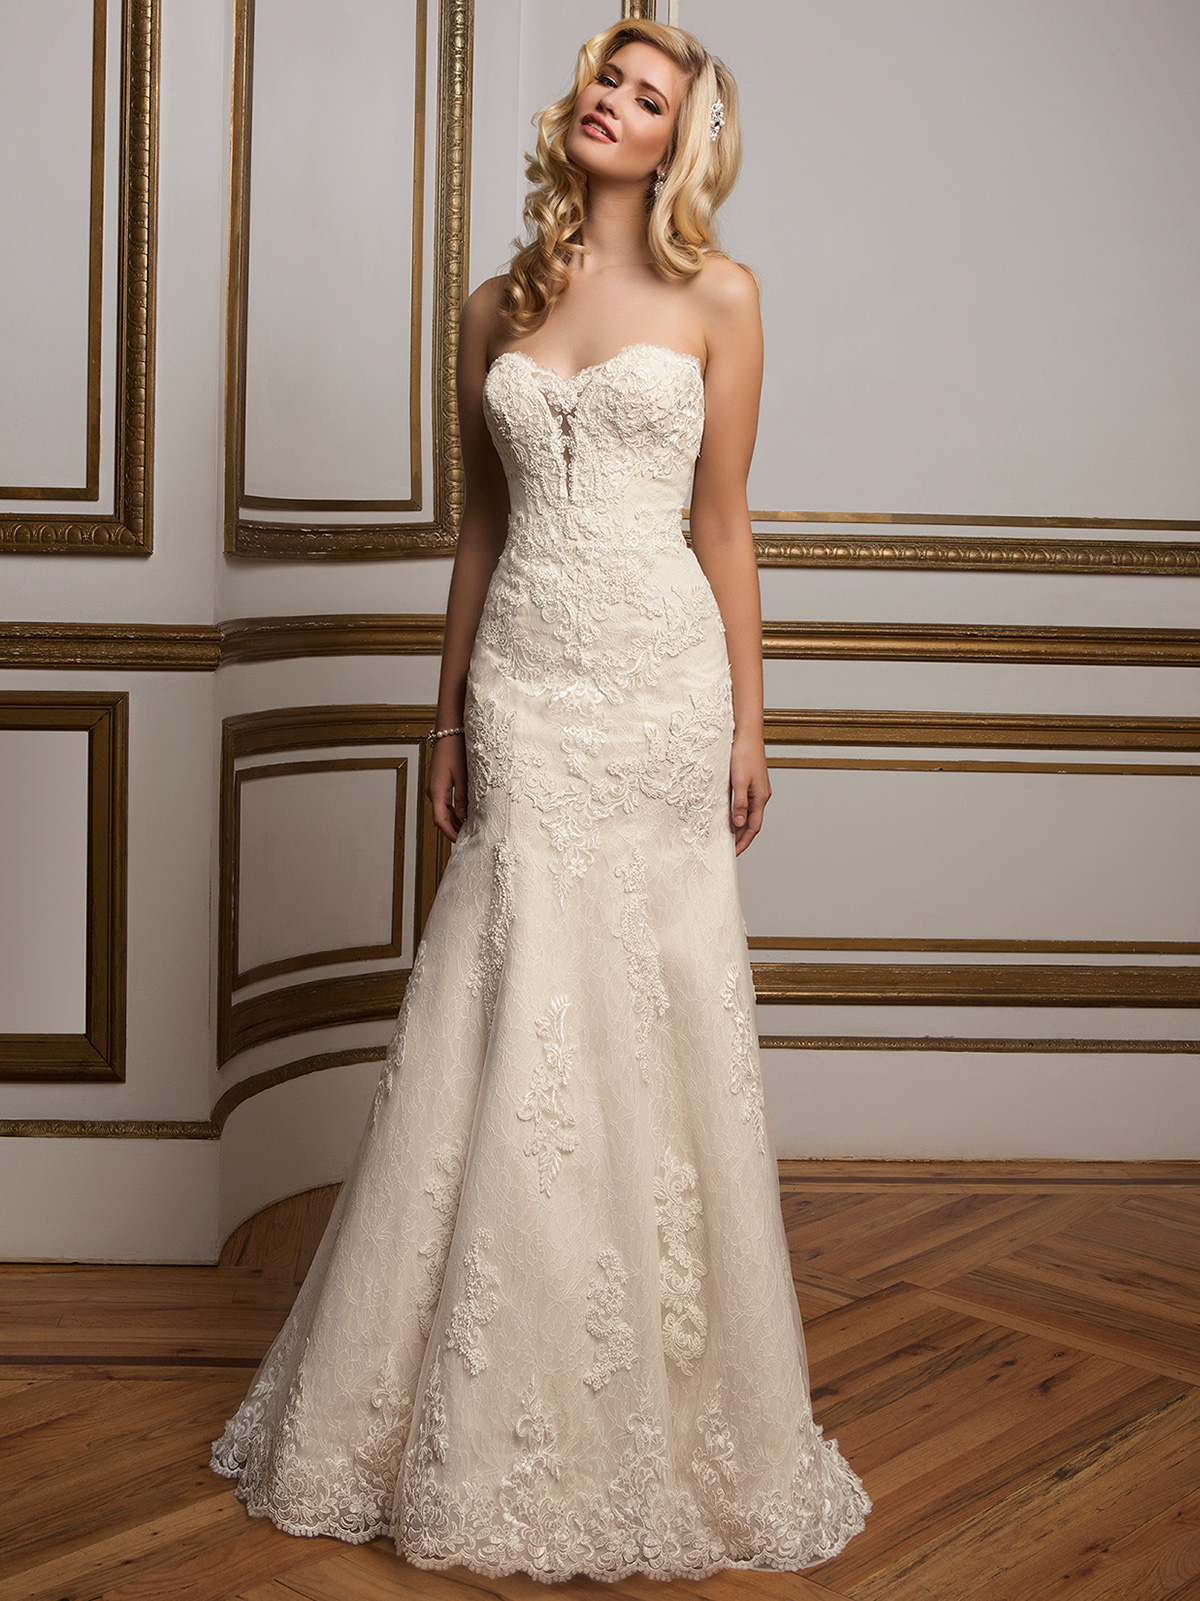 Justin Alexander 8811 Sweetheart Beaded Wedding Dress